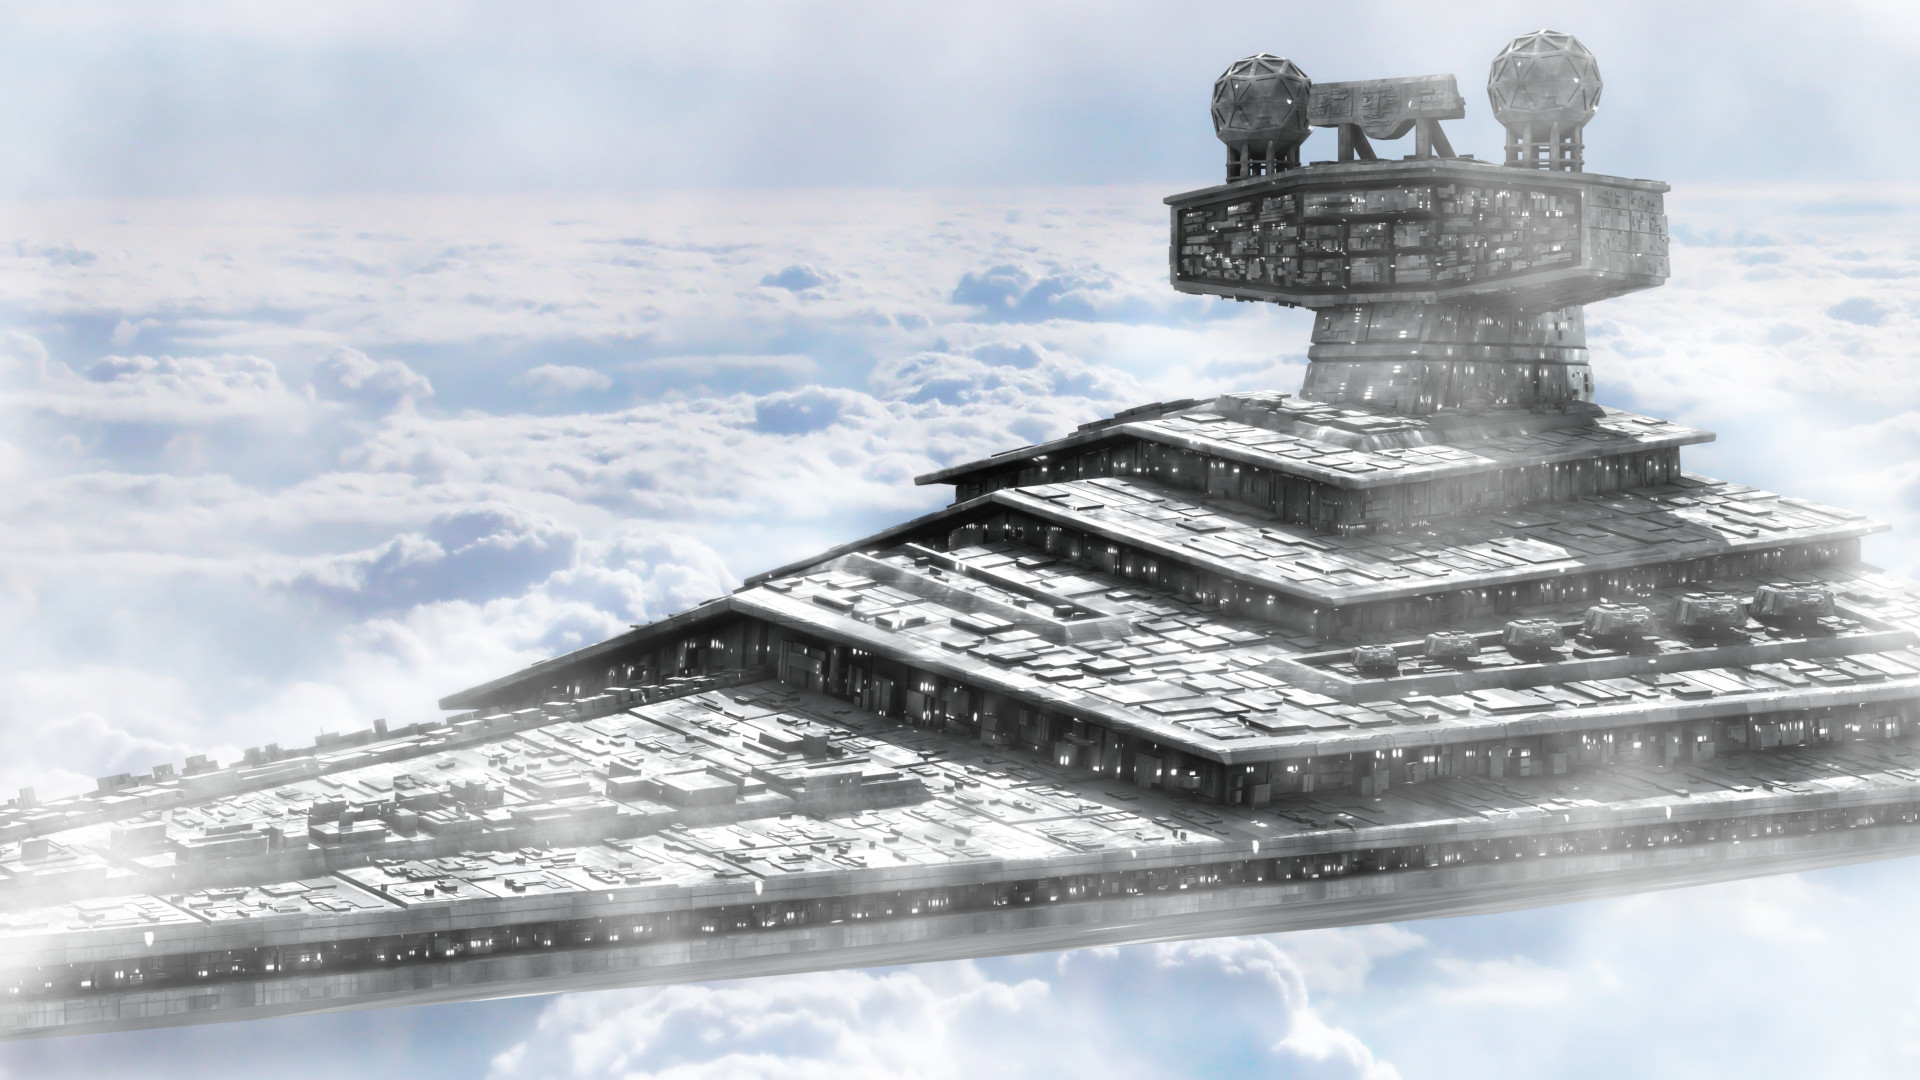 1920x1080 PreviousNext. Previous Image Next Image. star wars star destroyer wallpaper  ...